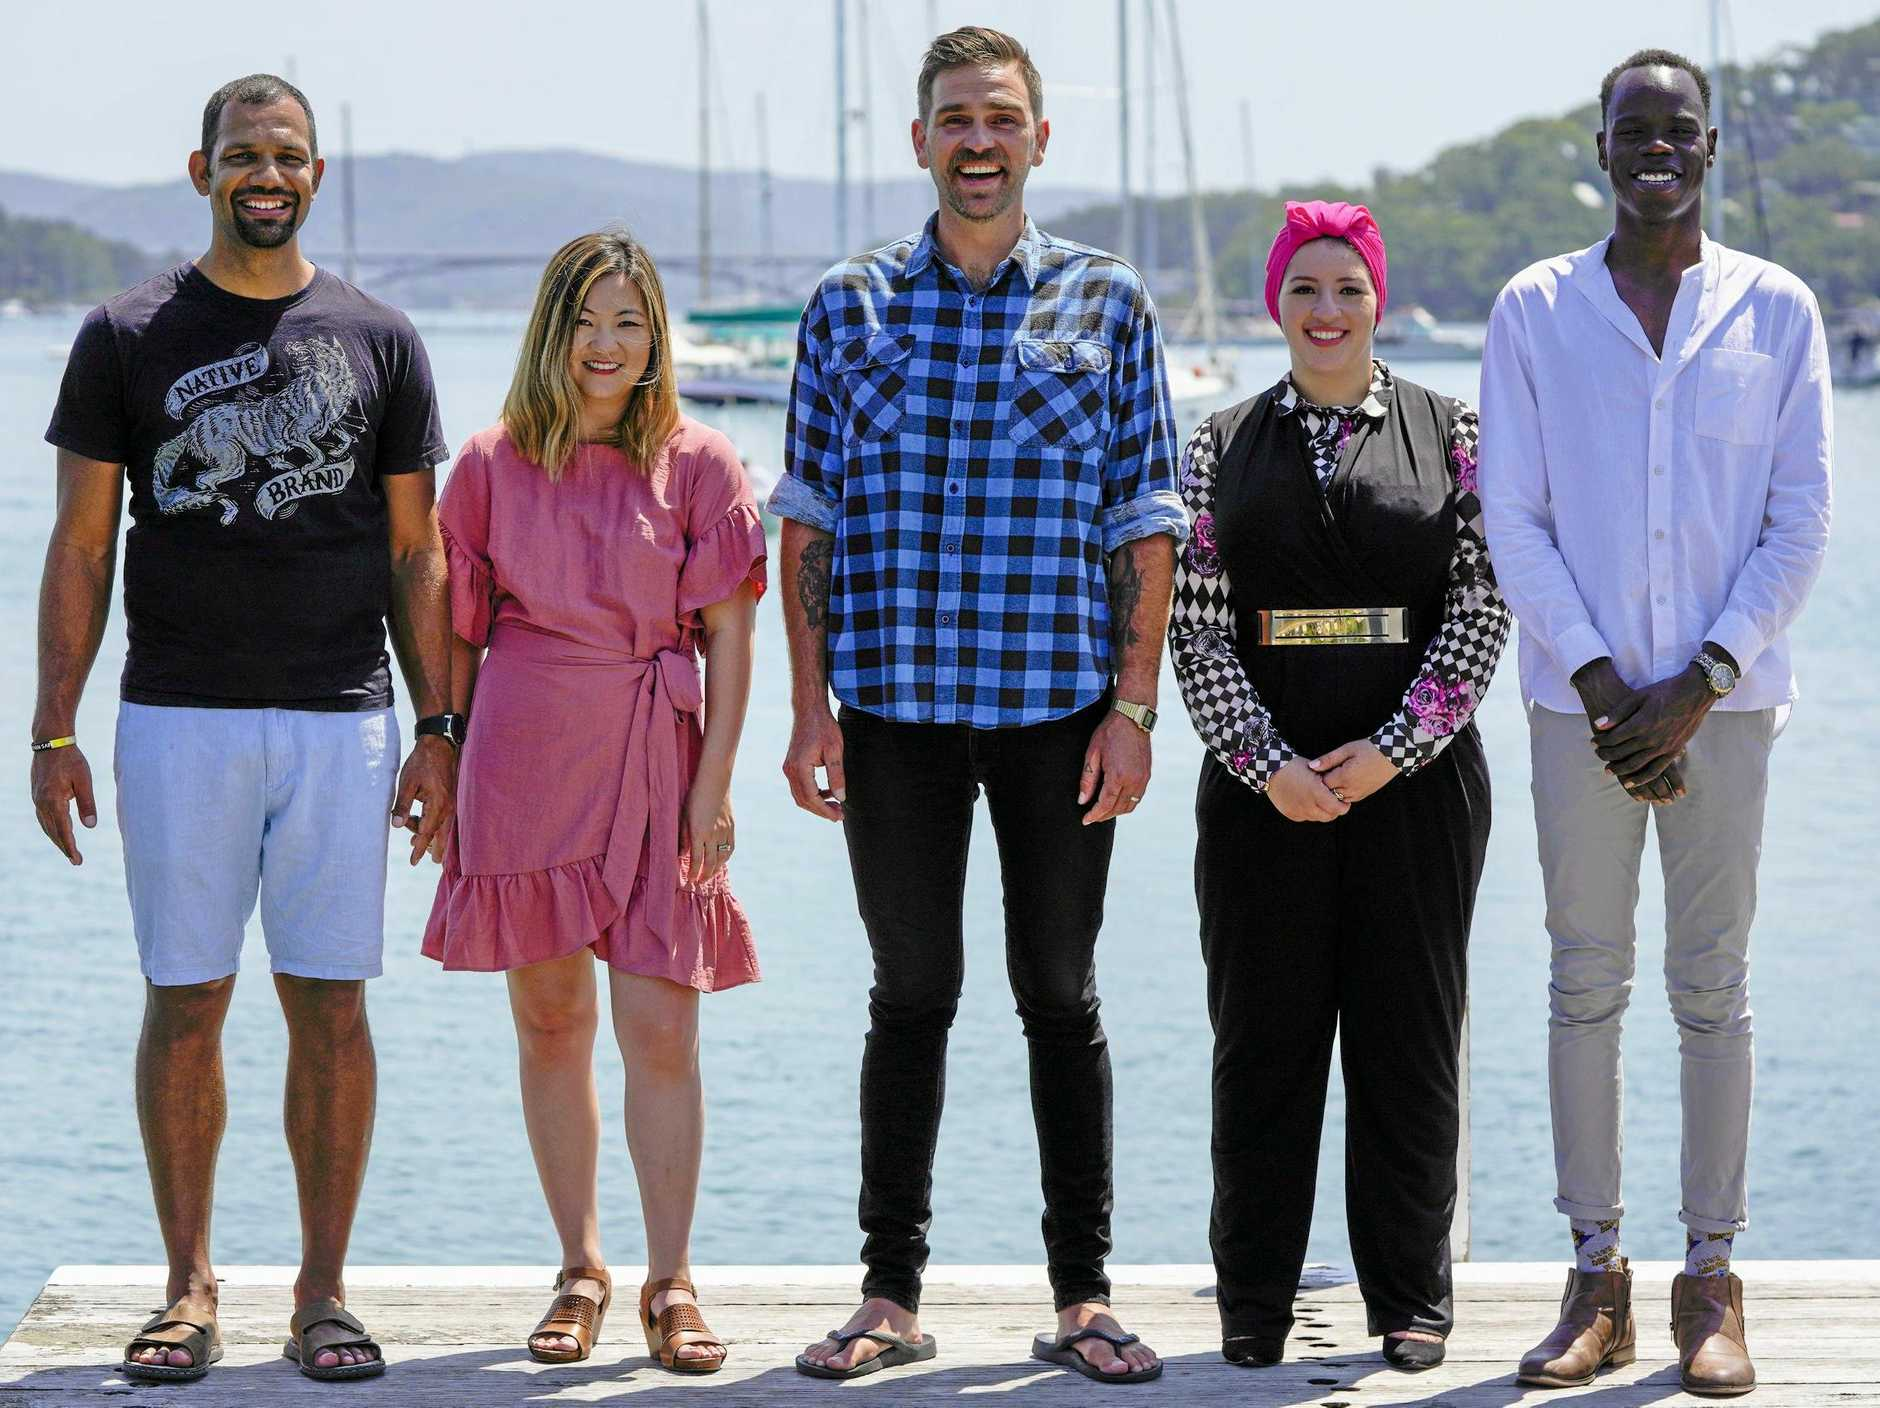 From left, Aaron, Jemma, Sara and Yong join host Harley Breen, centre, in the racism episode of Taboo. Taboo airs Thursday (June 20) at 8.40pm on Ten/WIN.